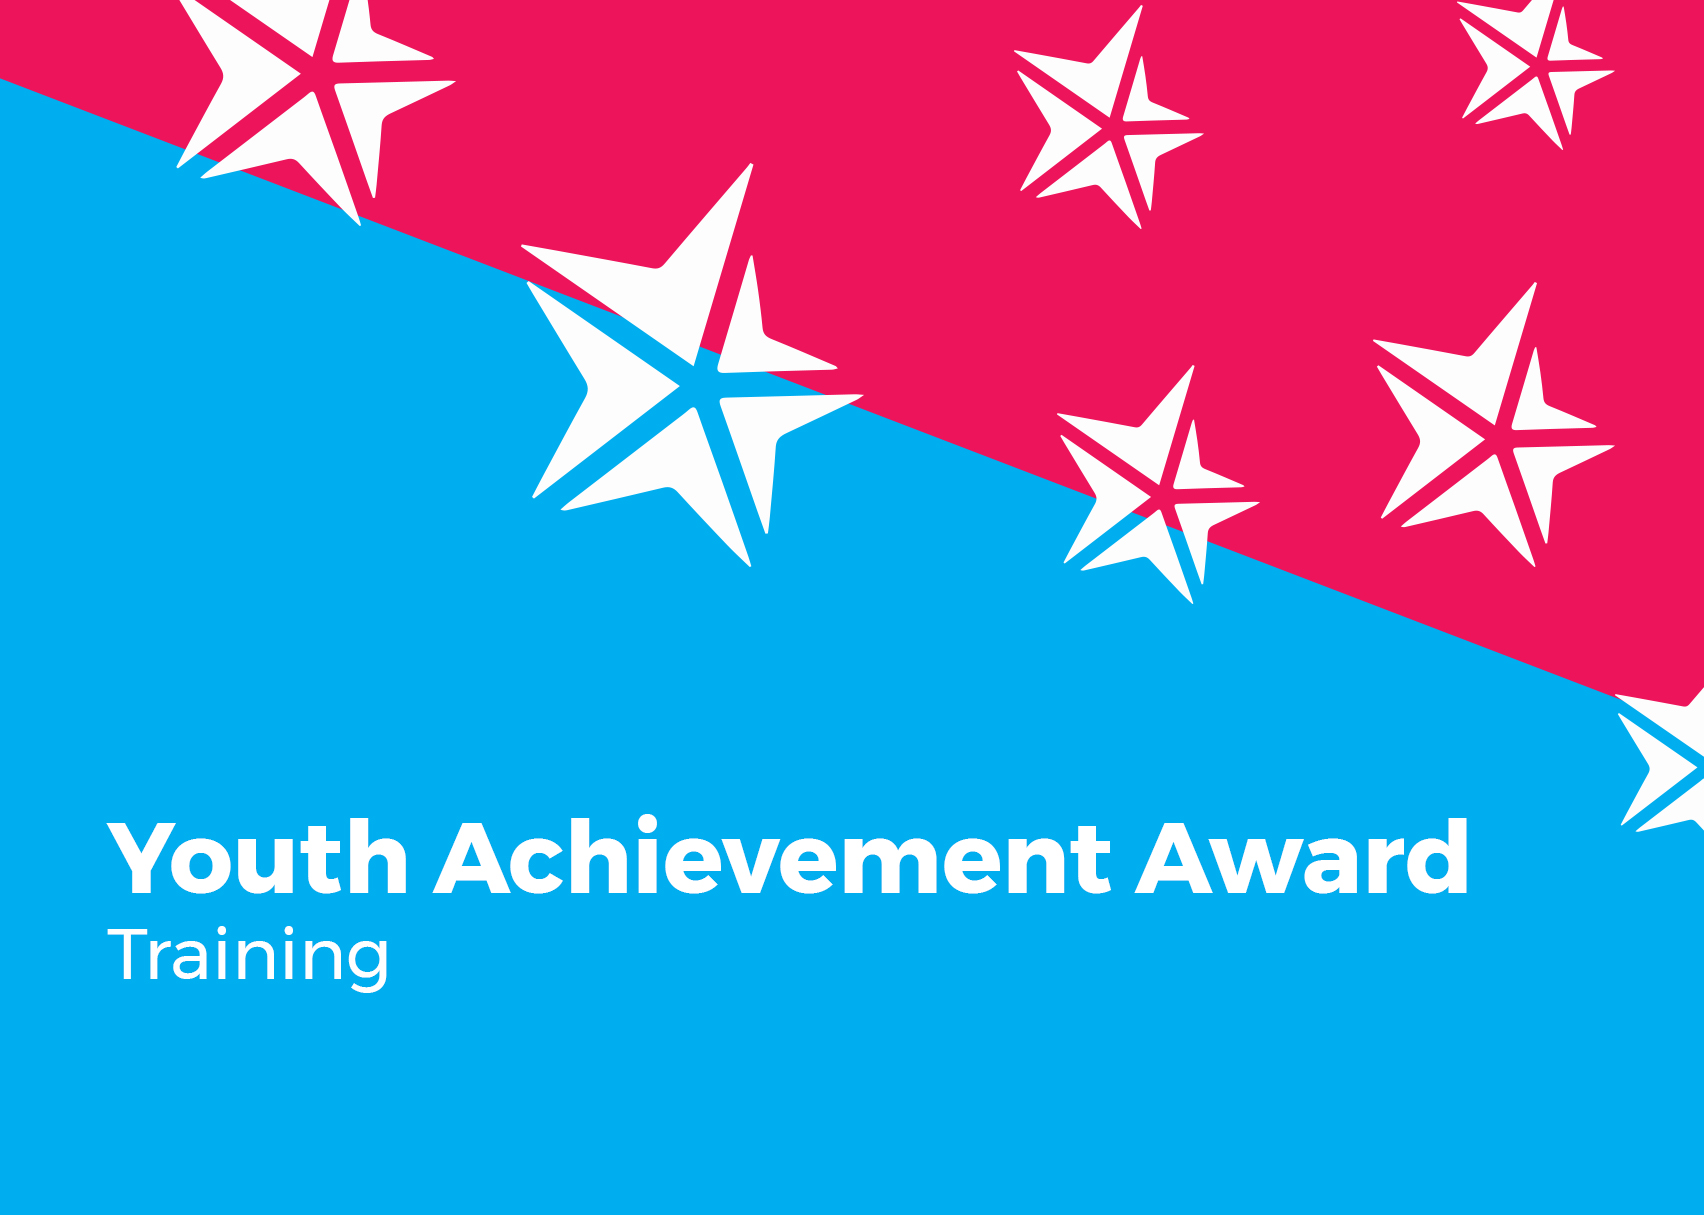 Youth Achievement Award Training